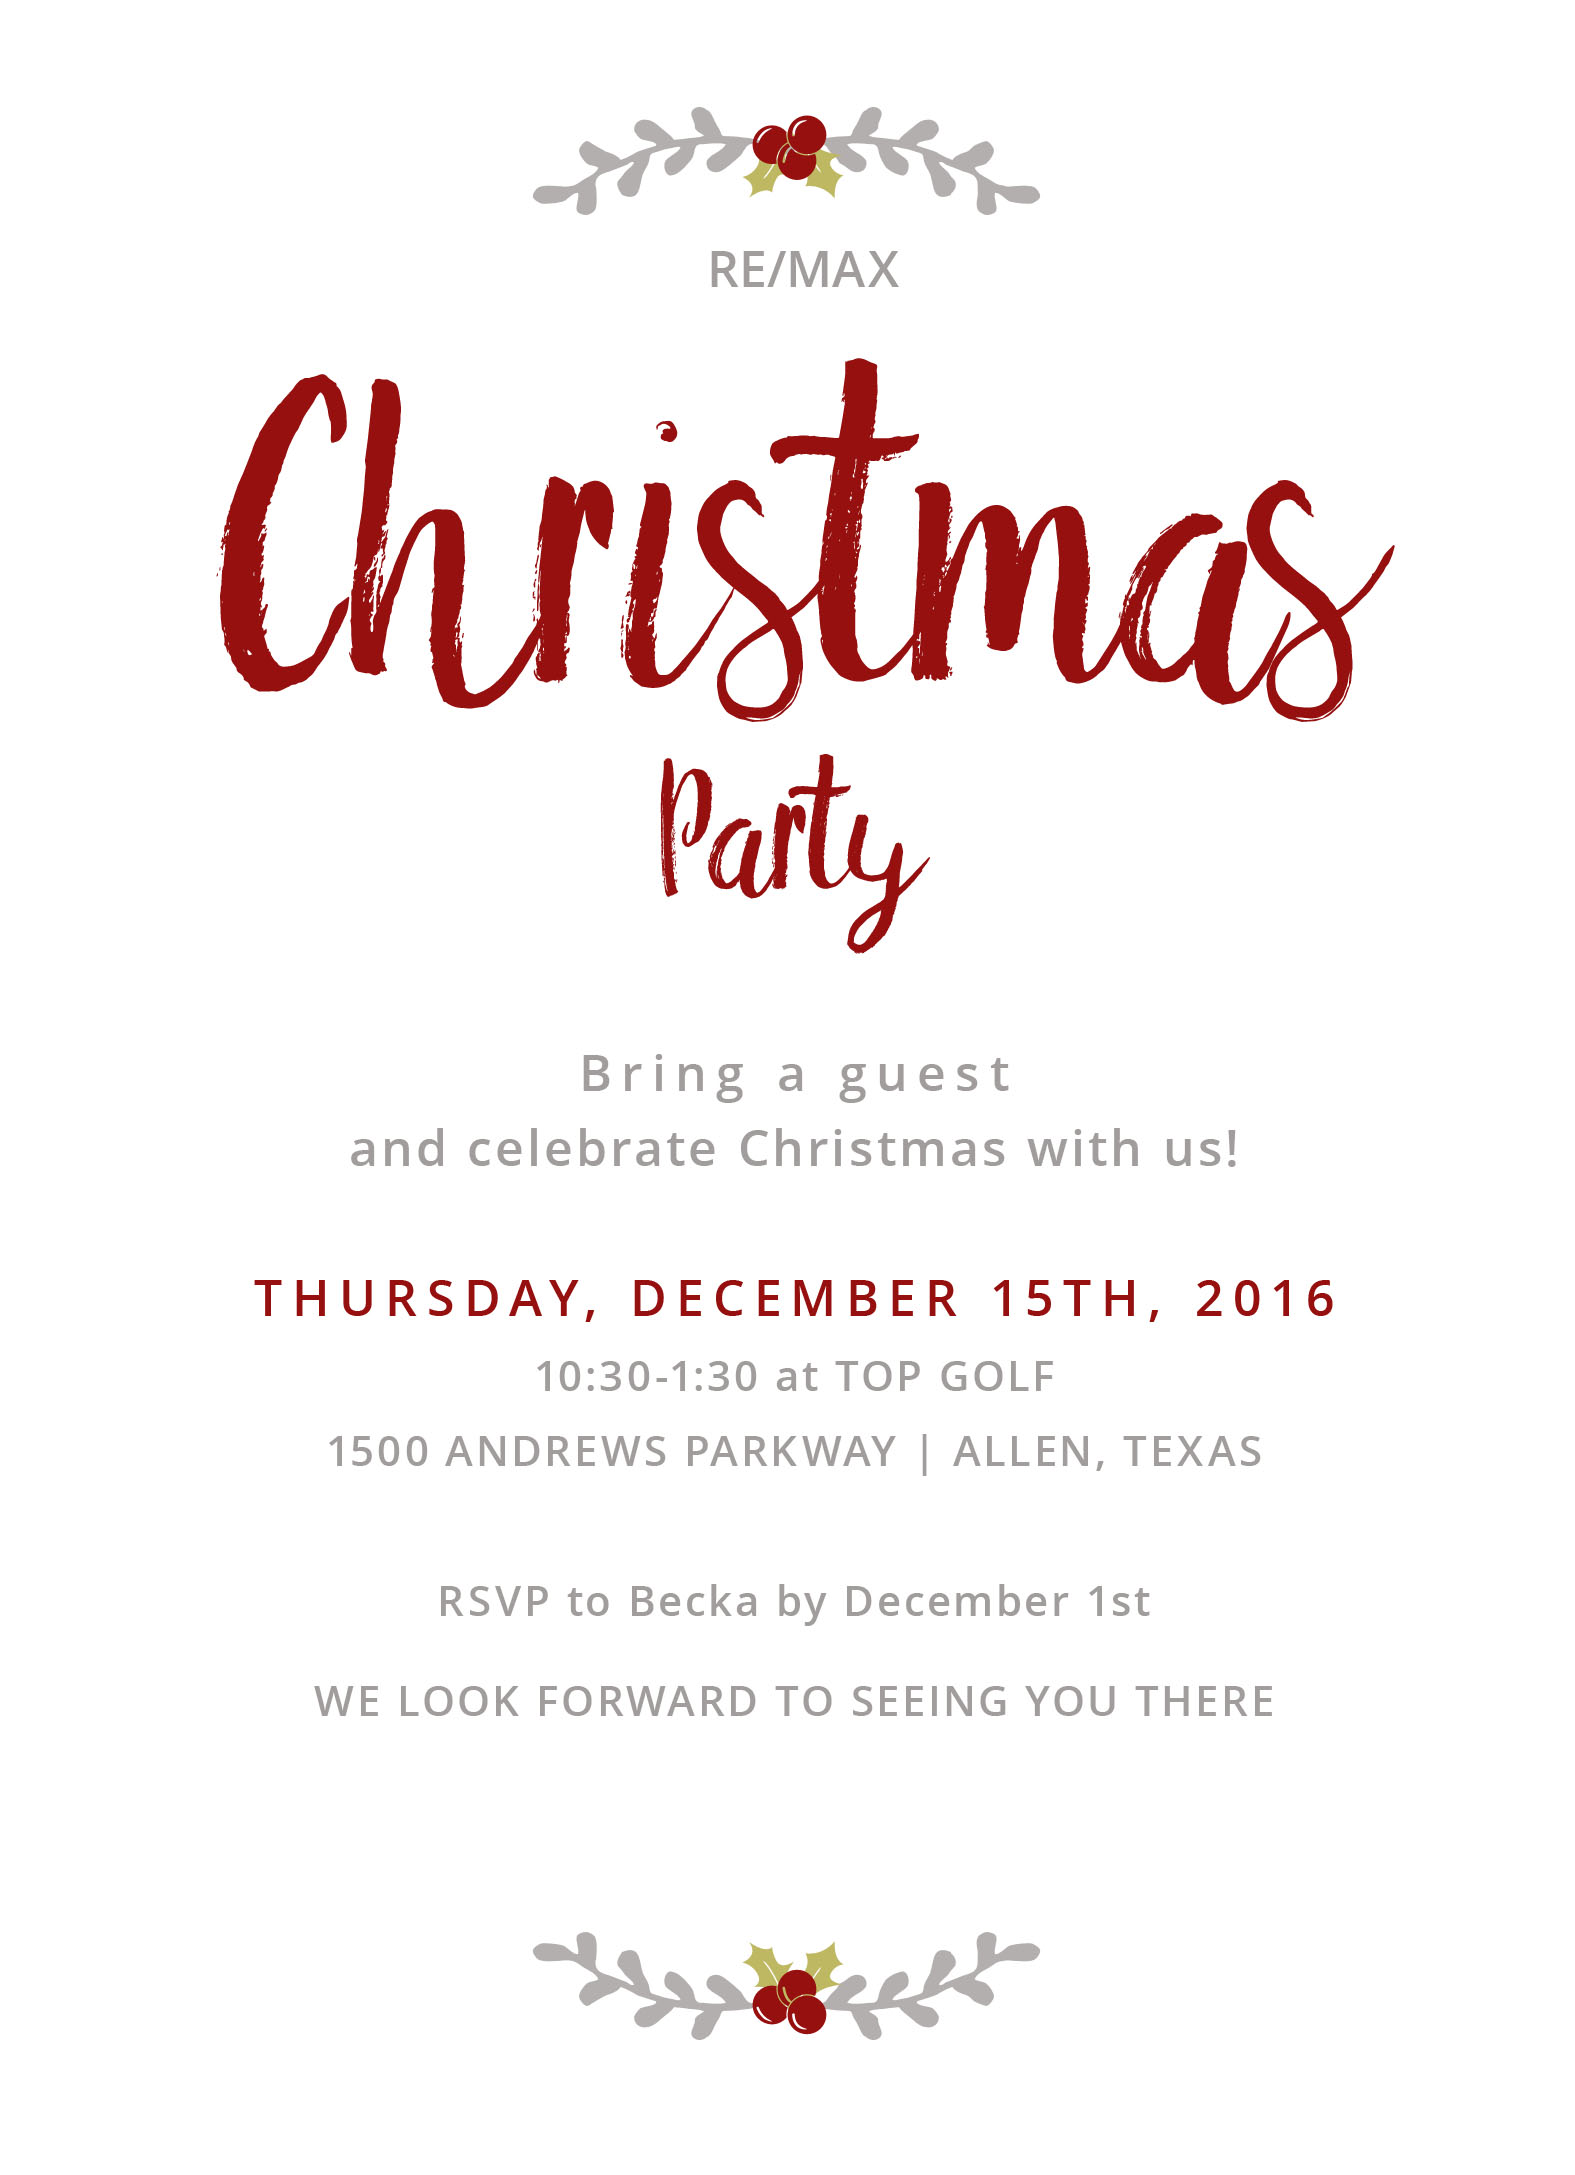 Remax Christmas Party 2020 You Are Invited! RE/MAX Signature Christmas Party